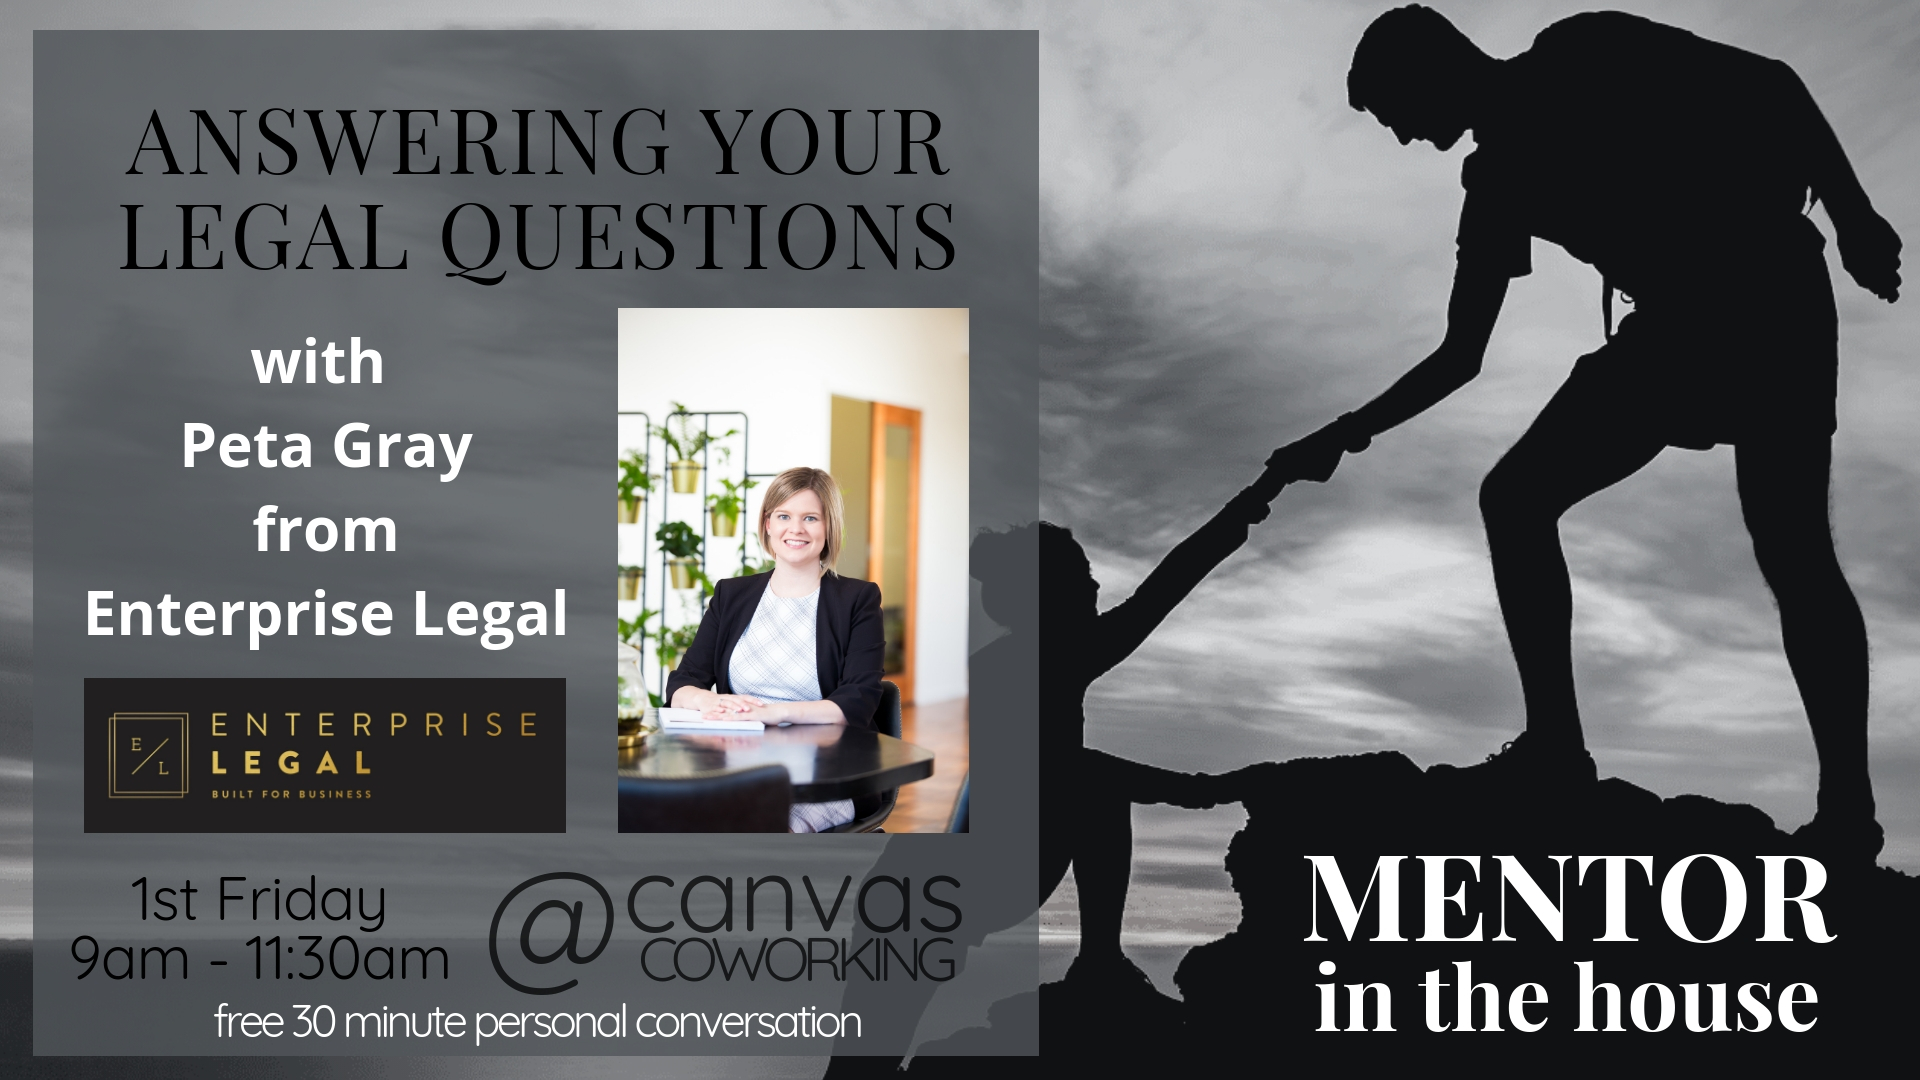 Legal Questions Answered - Mentor in the House - Canvas Coworking - Peta Gray